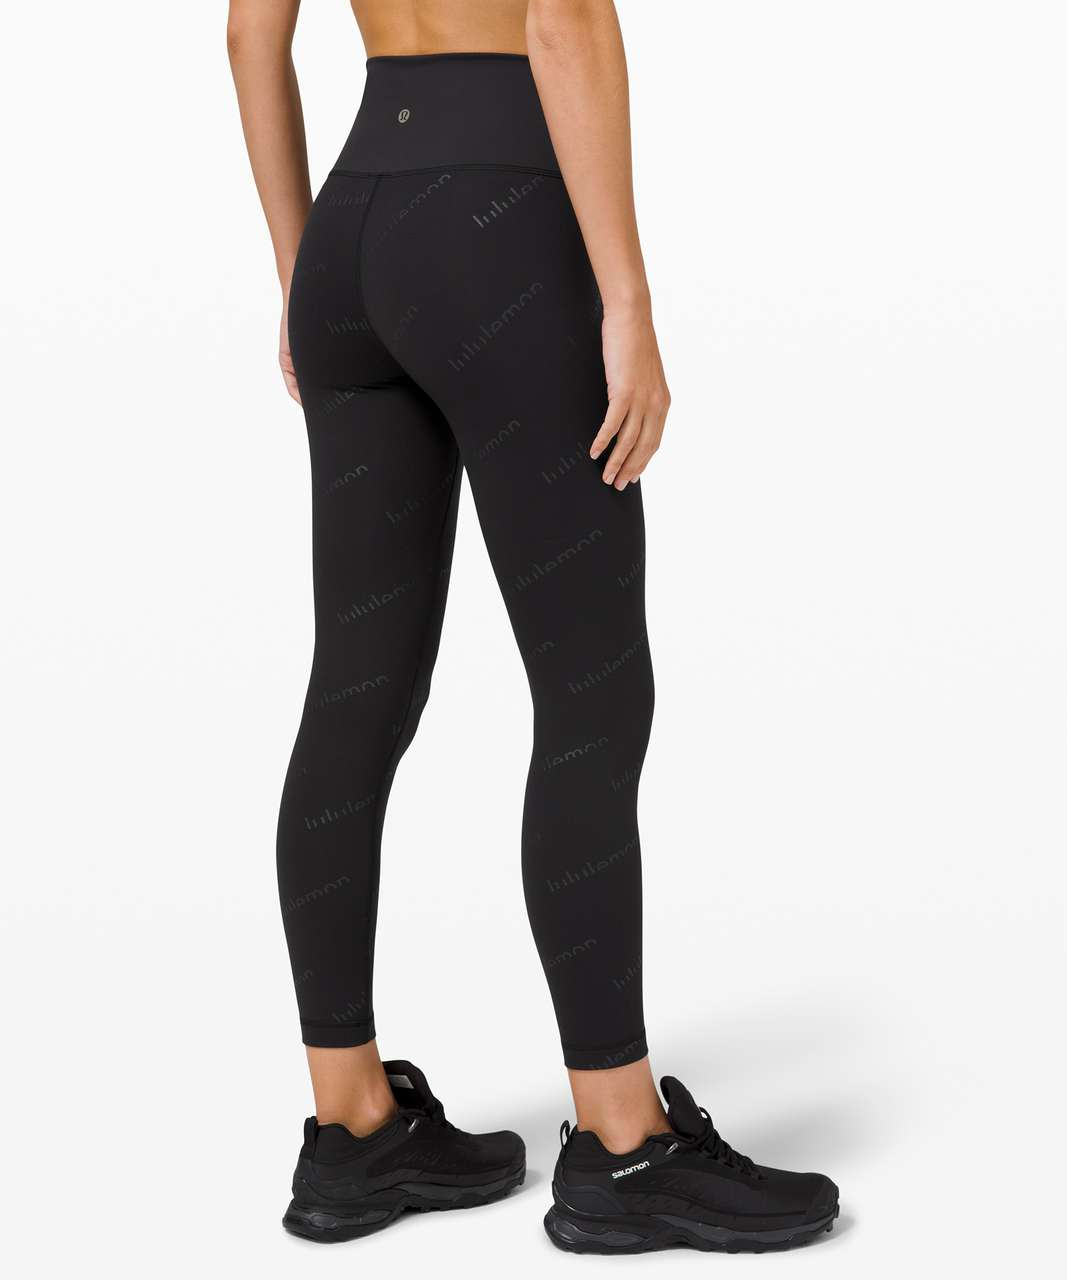 "Lululemon Wunder Train High-Rise Tight 25"" *Special Edition - Embossed Lululemon Black"